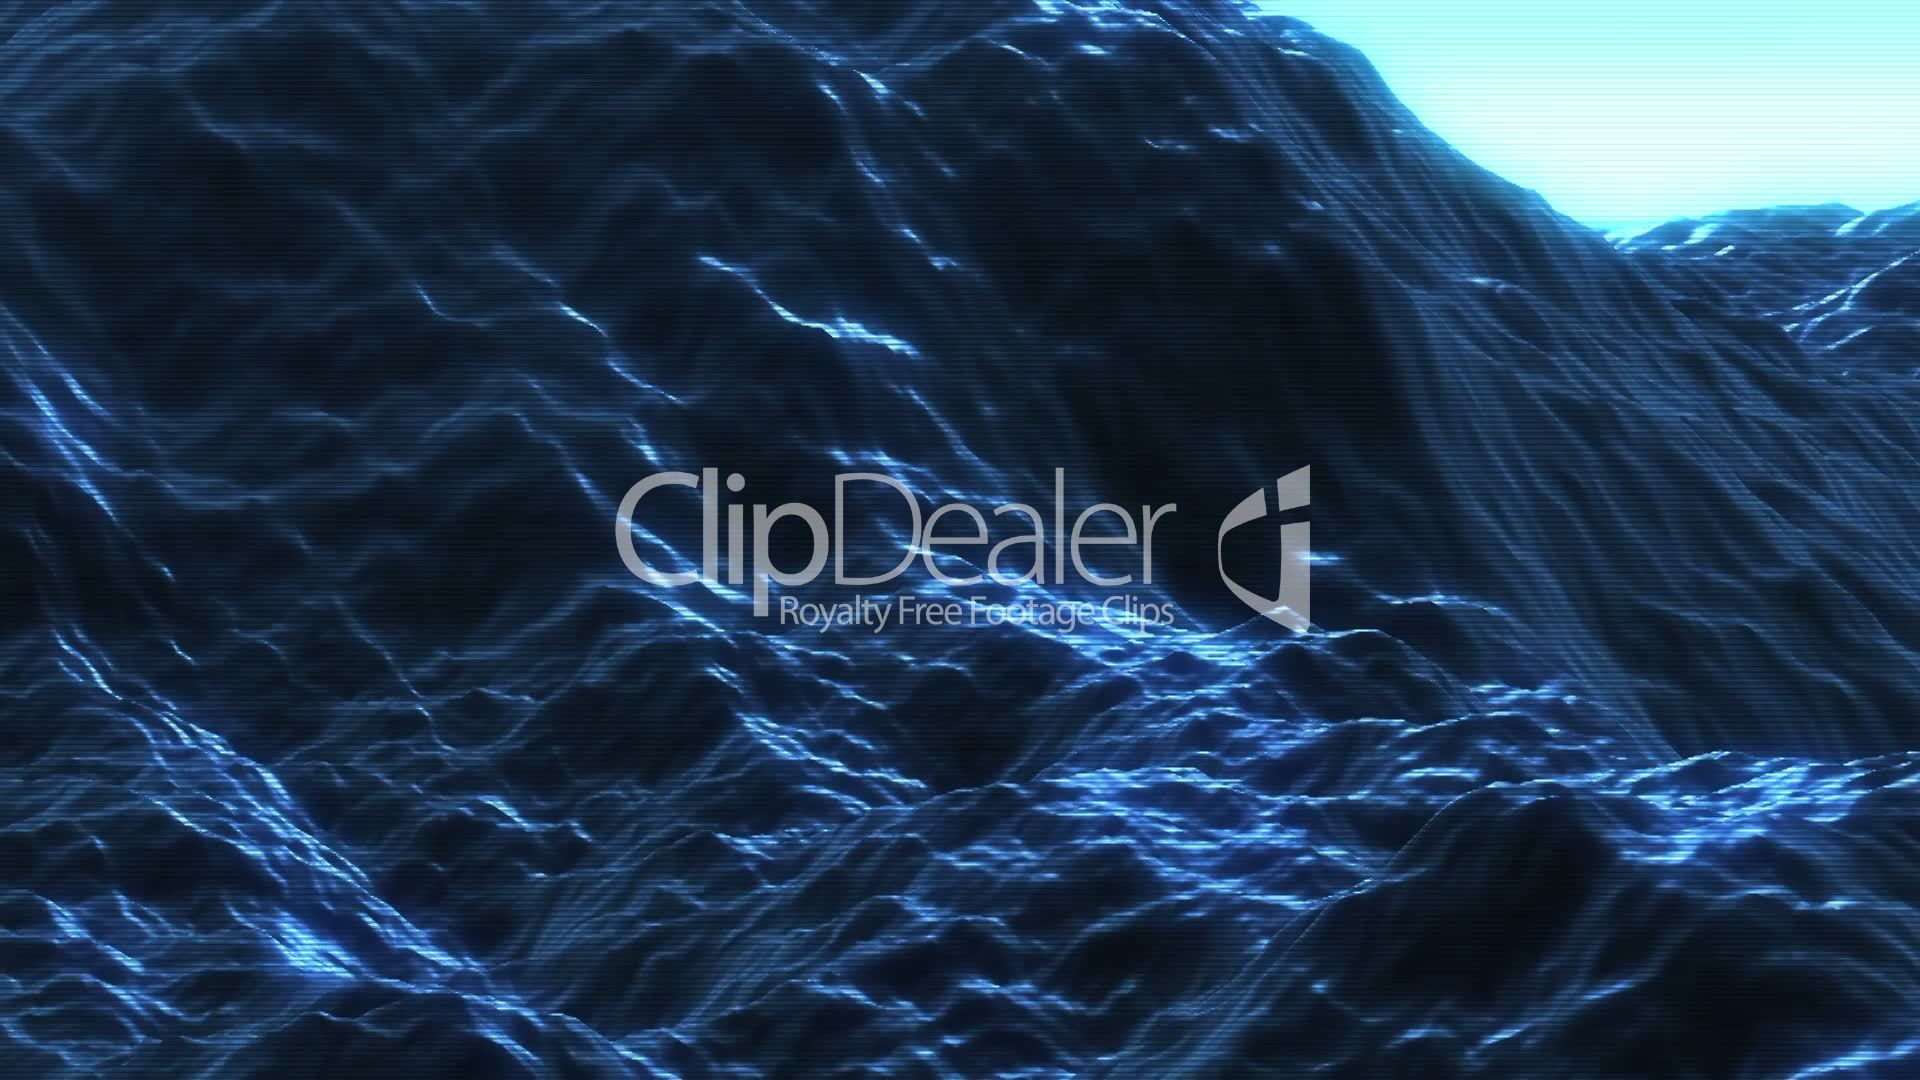 Ocean Waves Hologram: Royalty-free video and stock footage